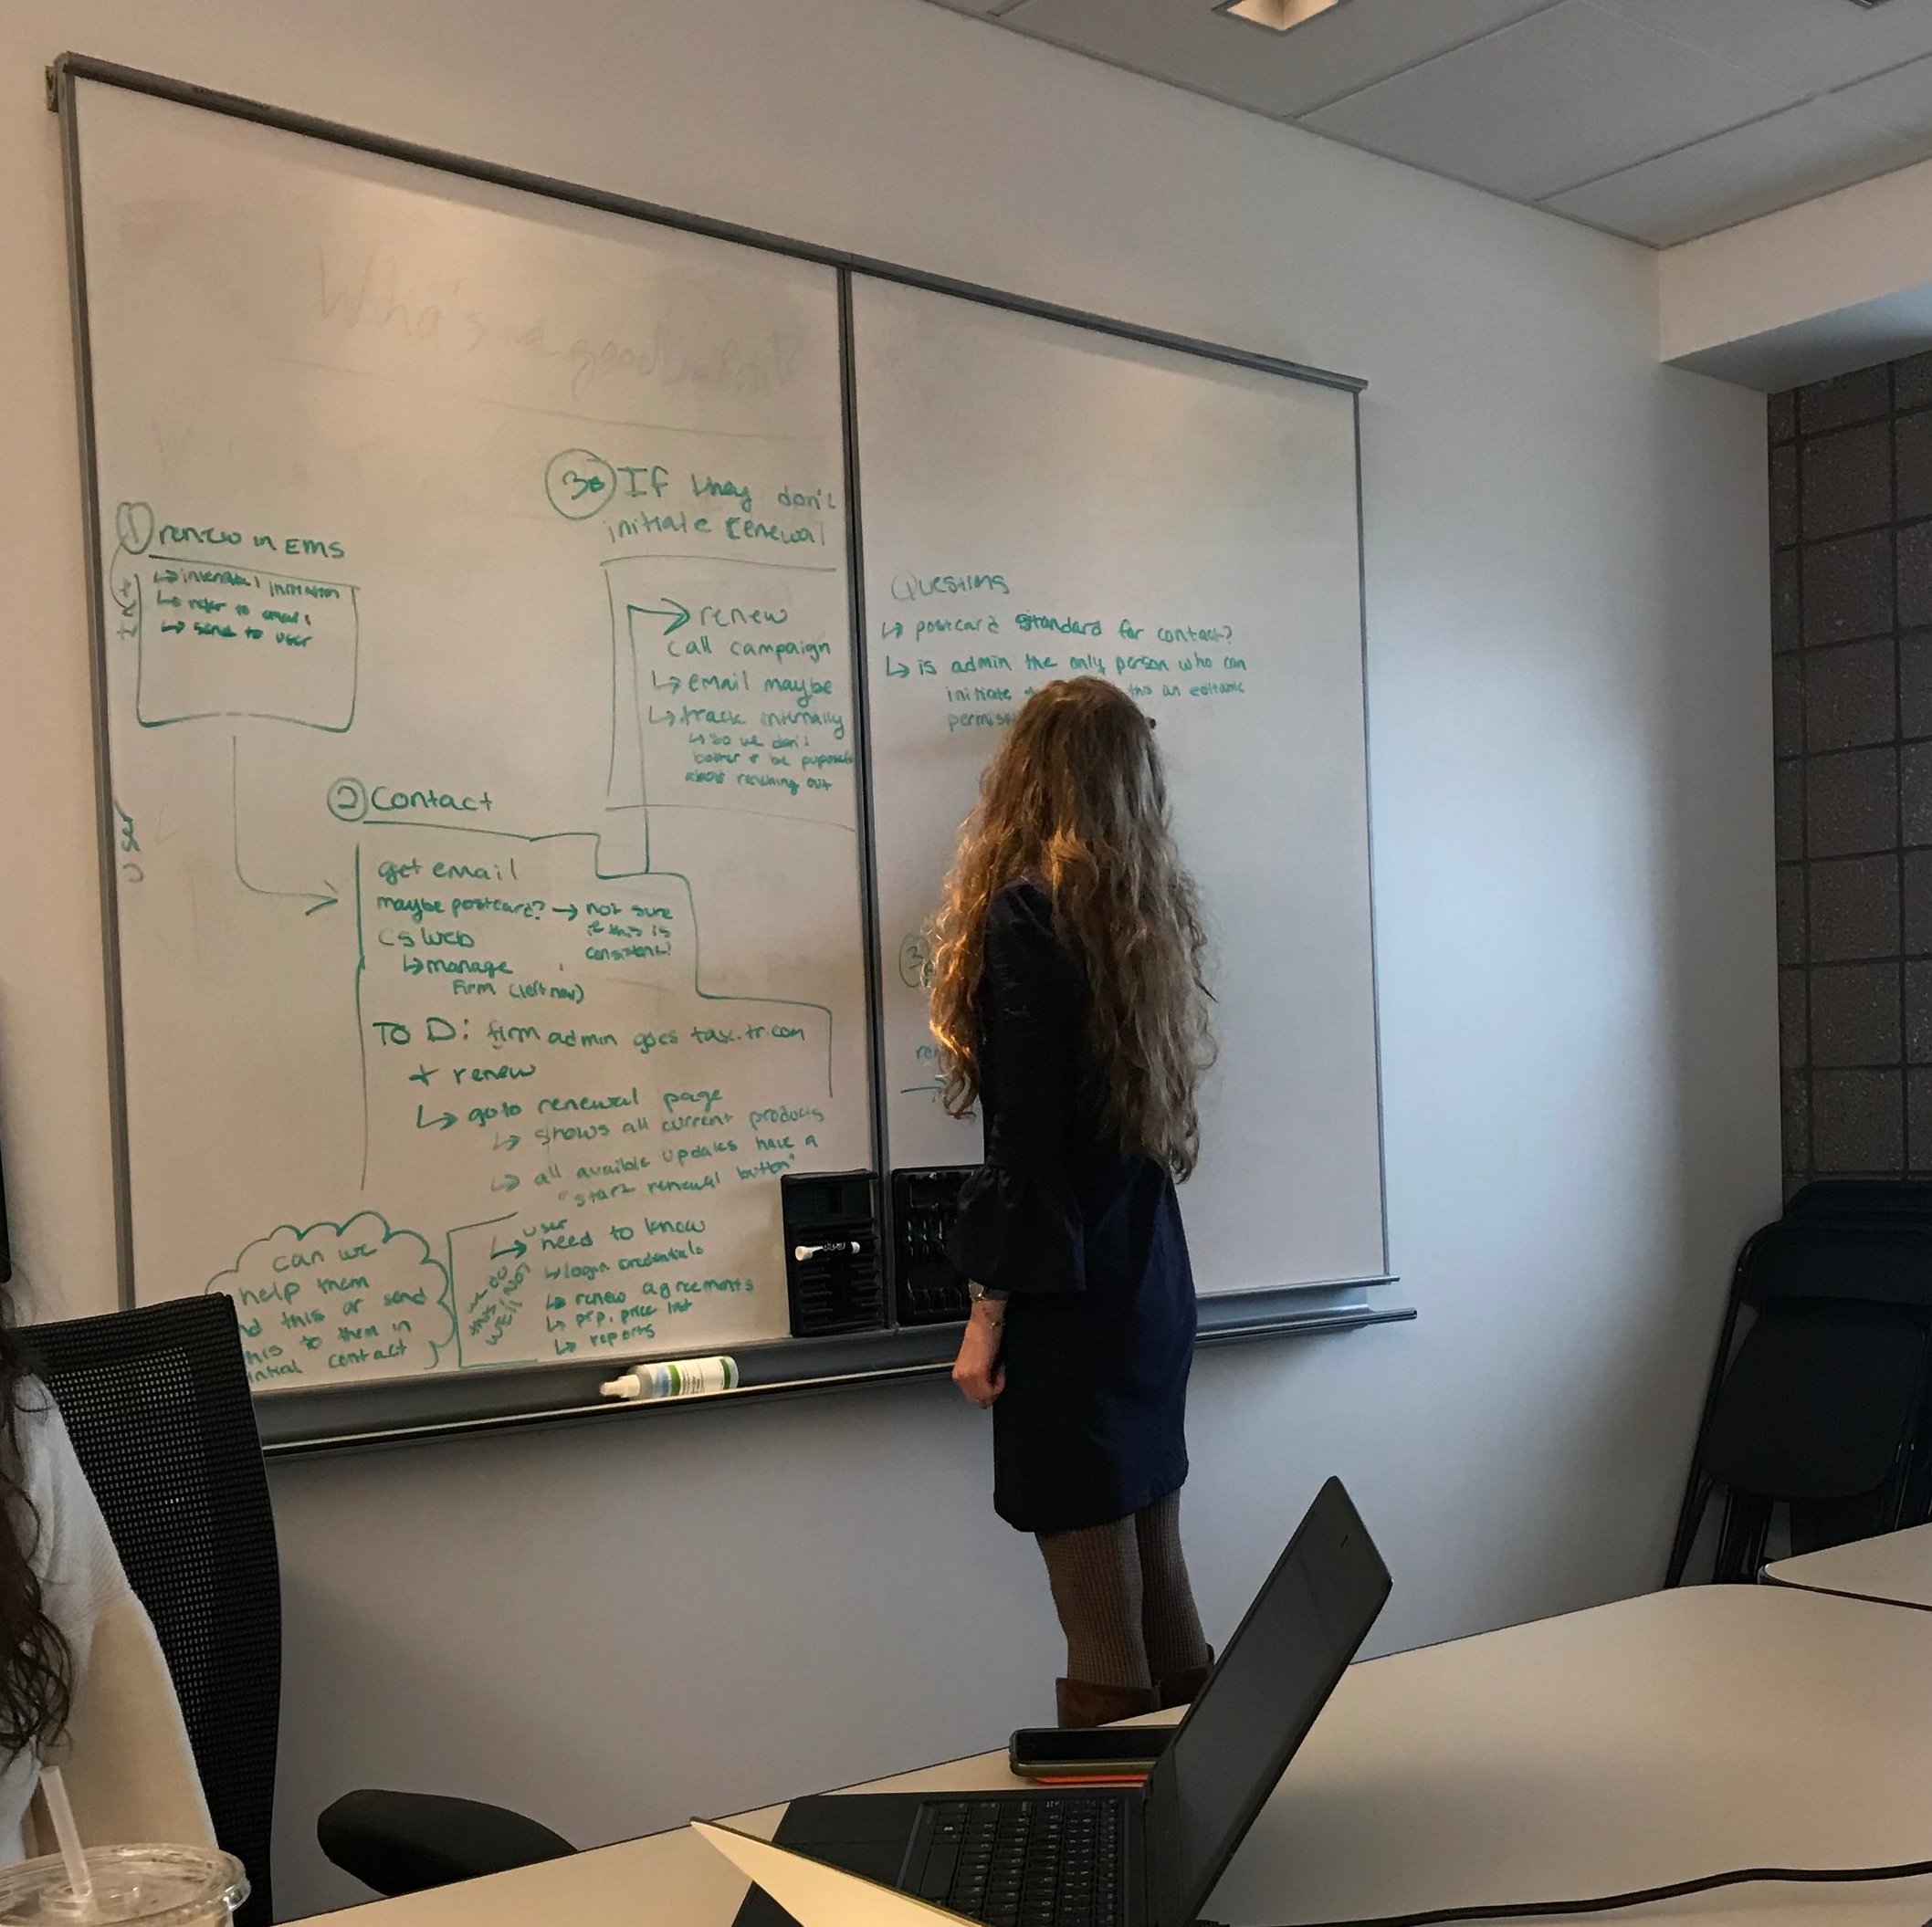 Whiteboarding moderated user testing tasks for an upcoming testing day